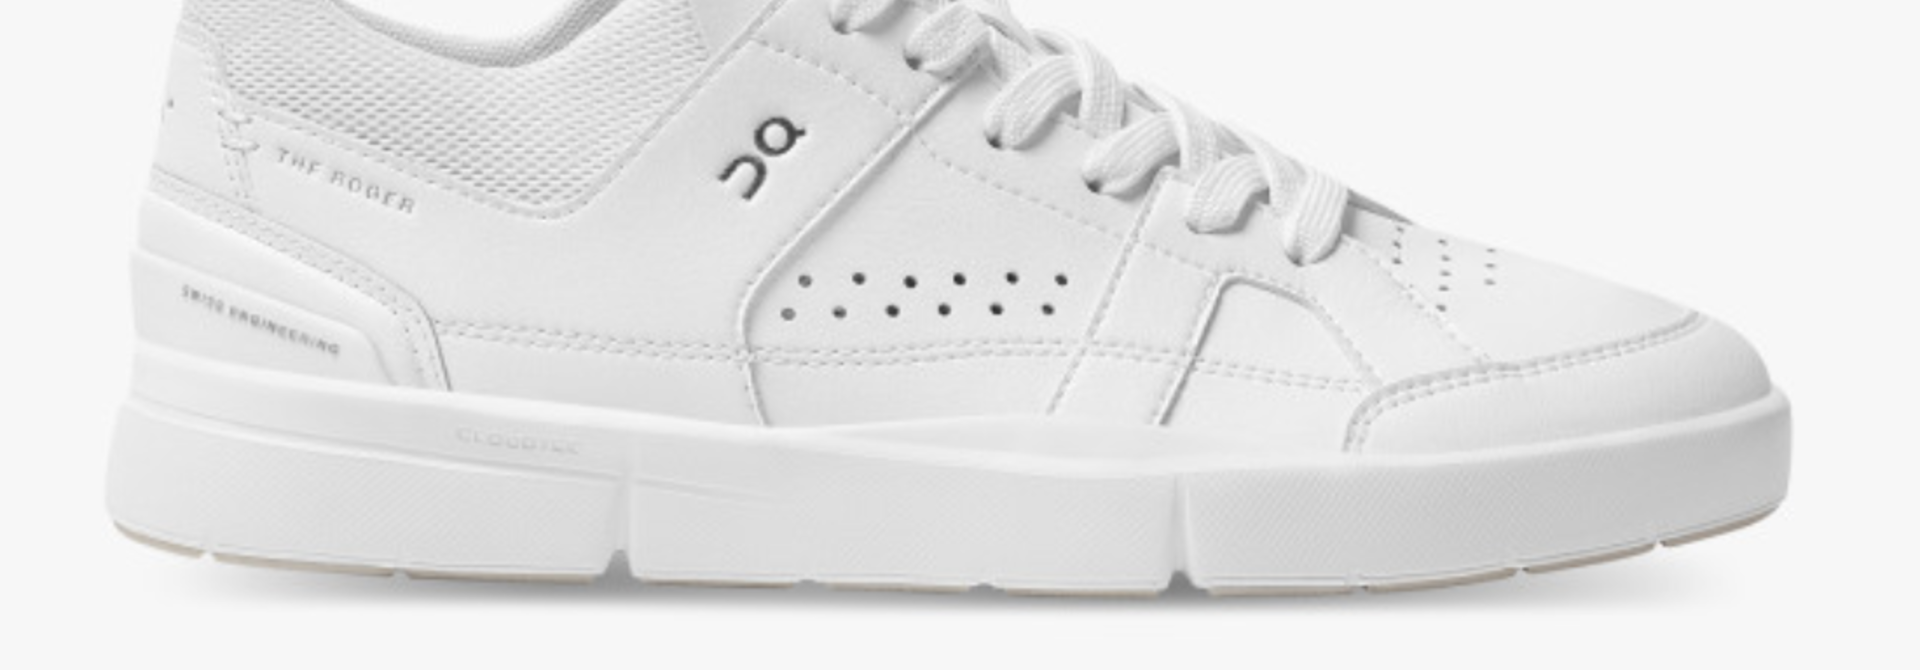 Women's The Roger Clubhouse All White